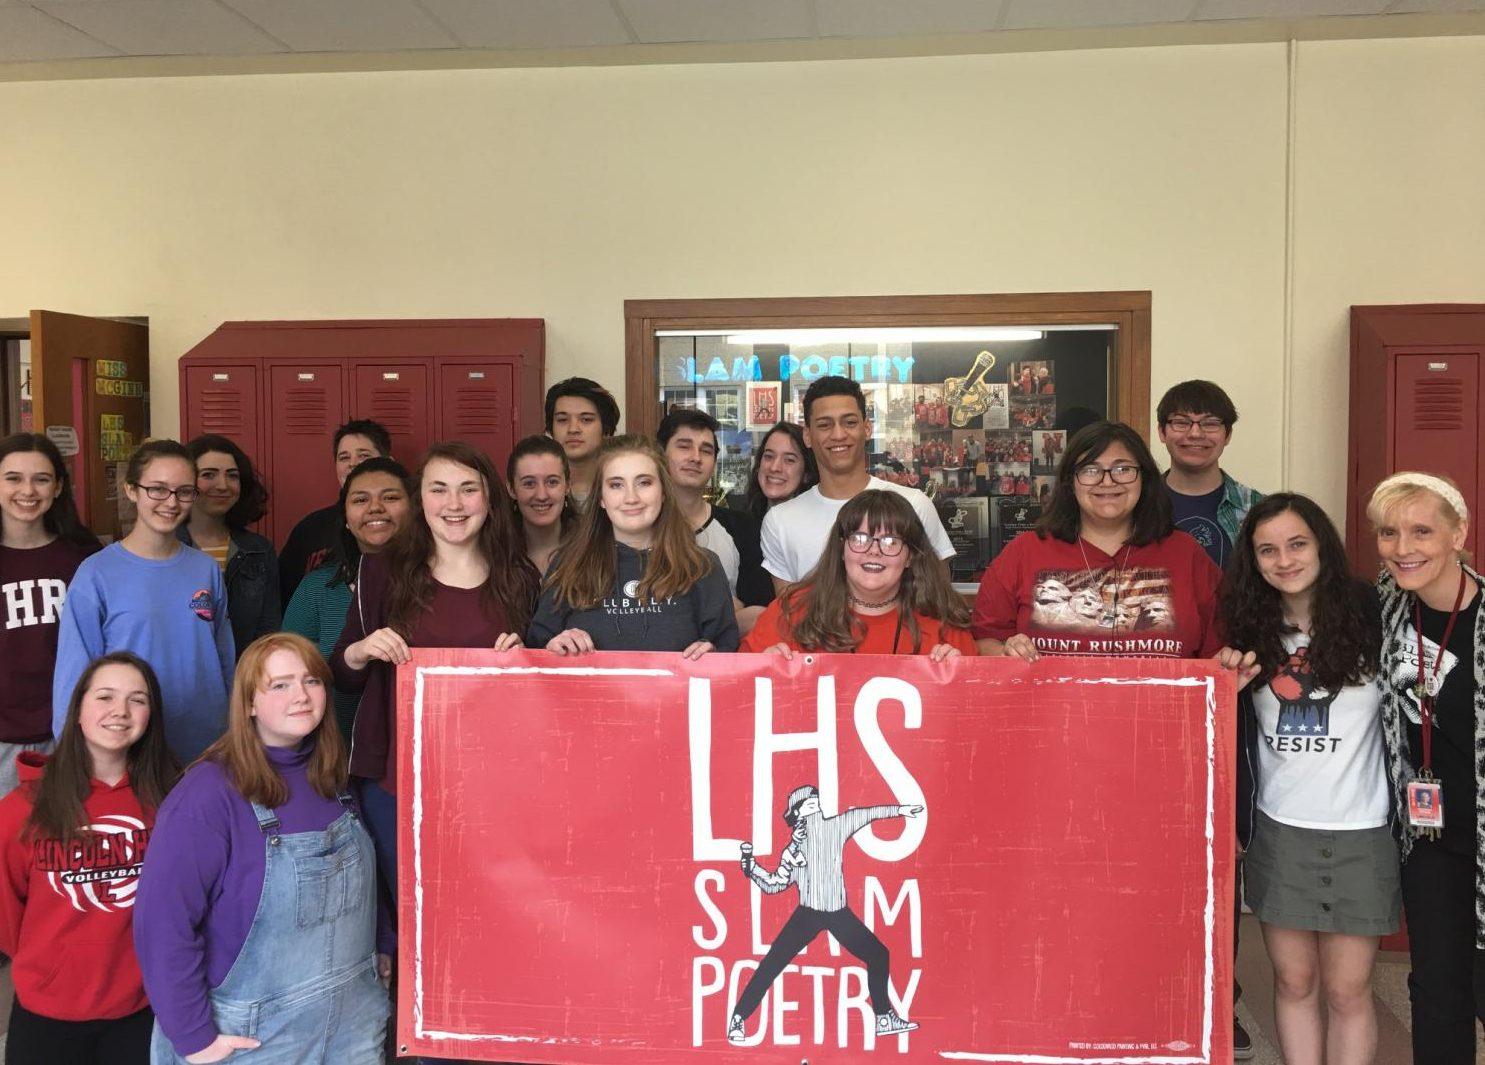 The 2018 LHS Slam Poetry Team poses with their new banner in preparation for their state bout which will be on Tuesday, April 24, 2018 at the Louder Than A Bomb Team Finals at the Holland Center, Omaha - 1200 Douglas St. beginning at 7 p.m.  Photo courtesy of Deborah McGinn